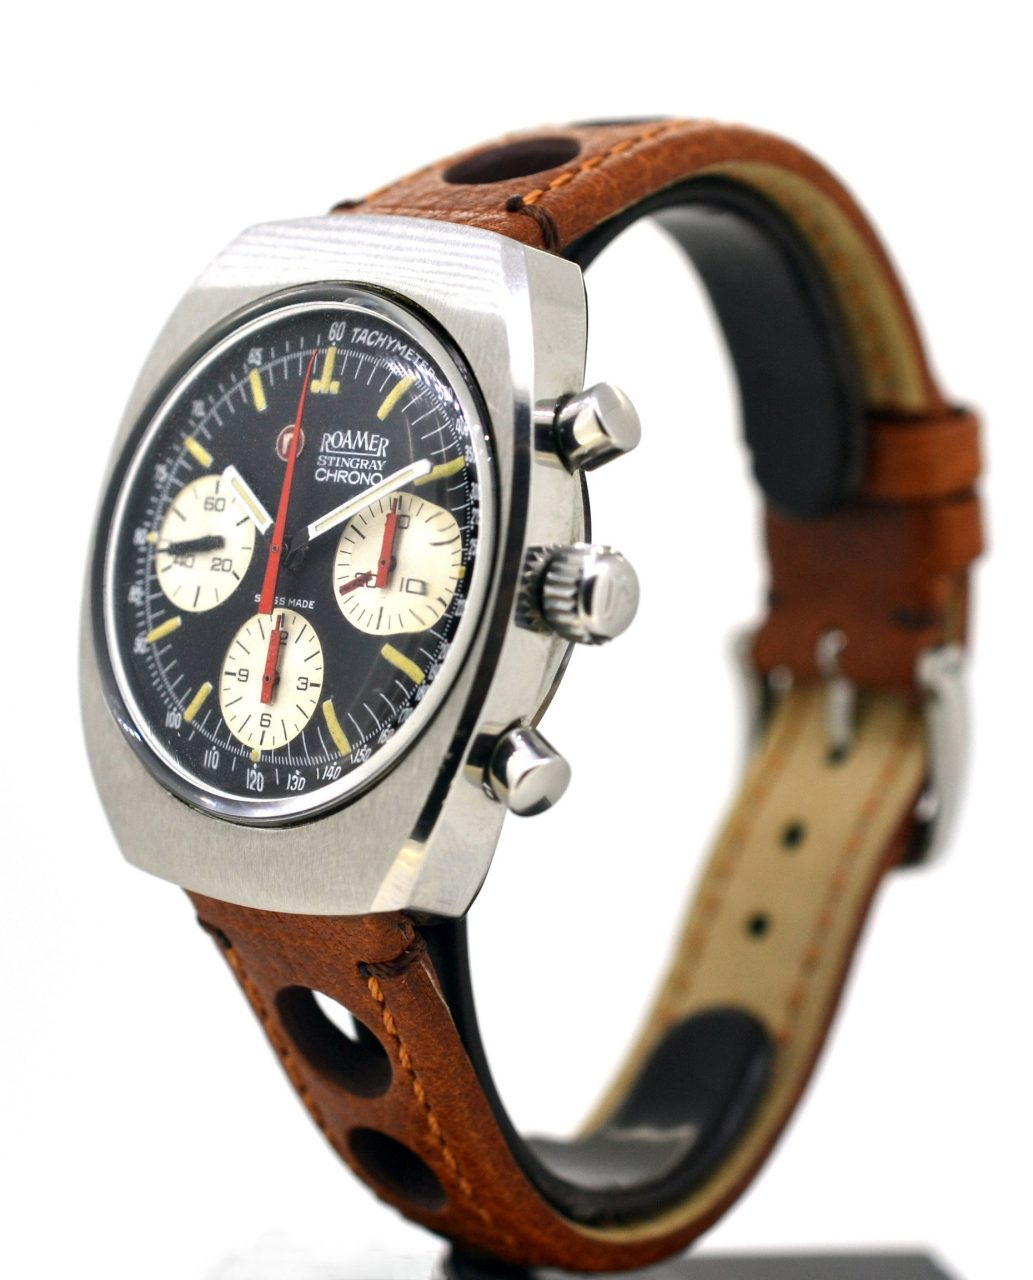 Roamer Stingray Chronograph Watches of Lancashire